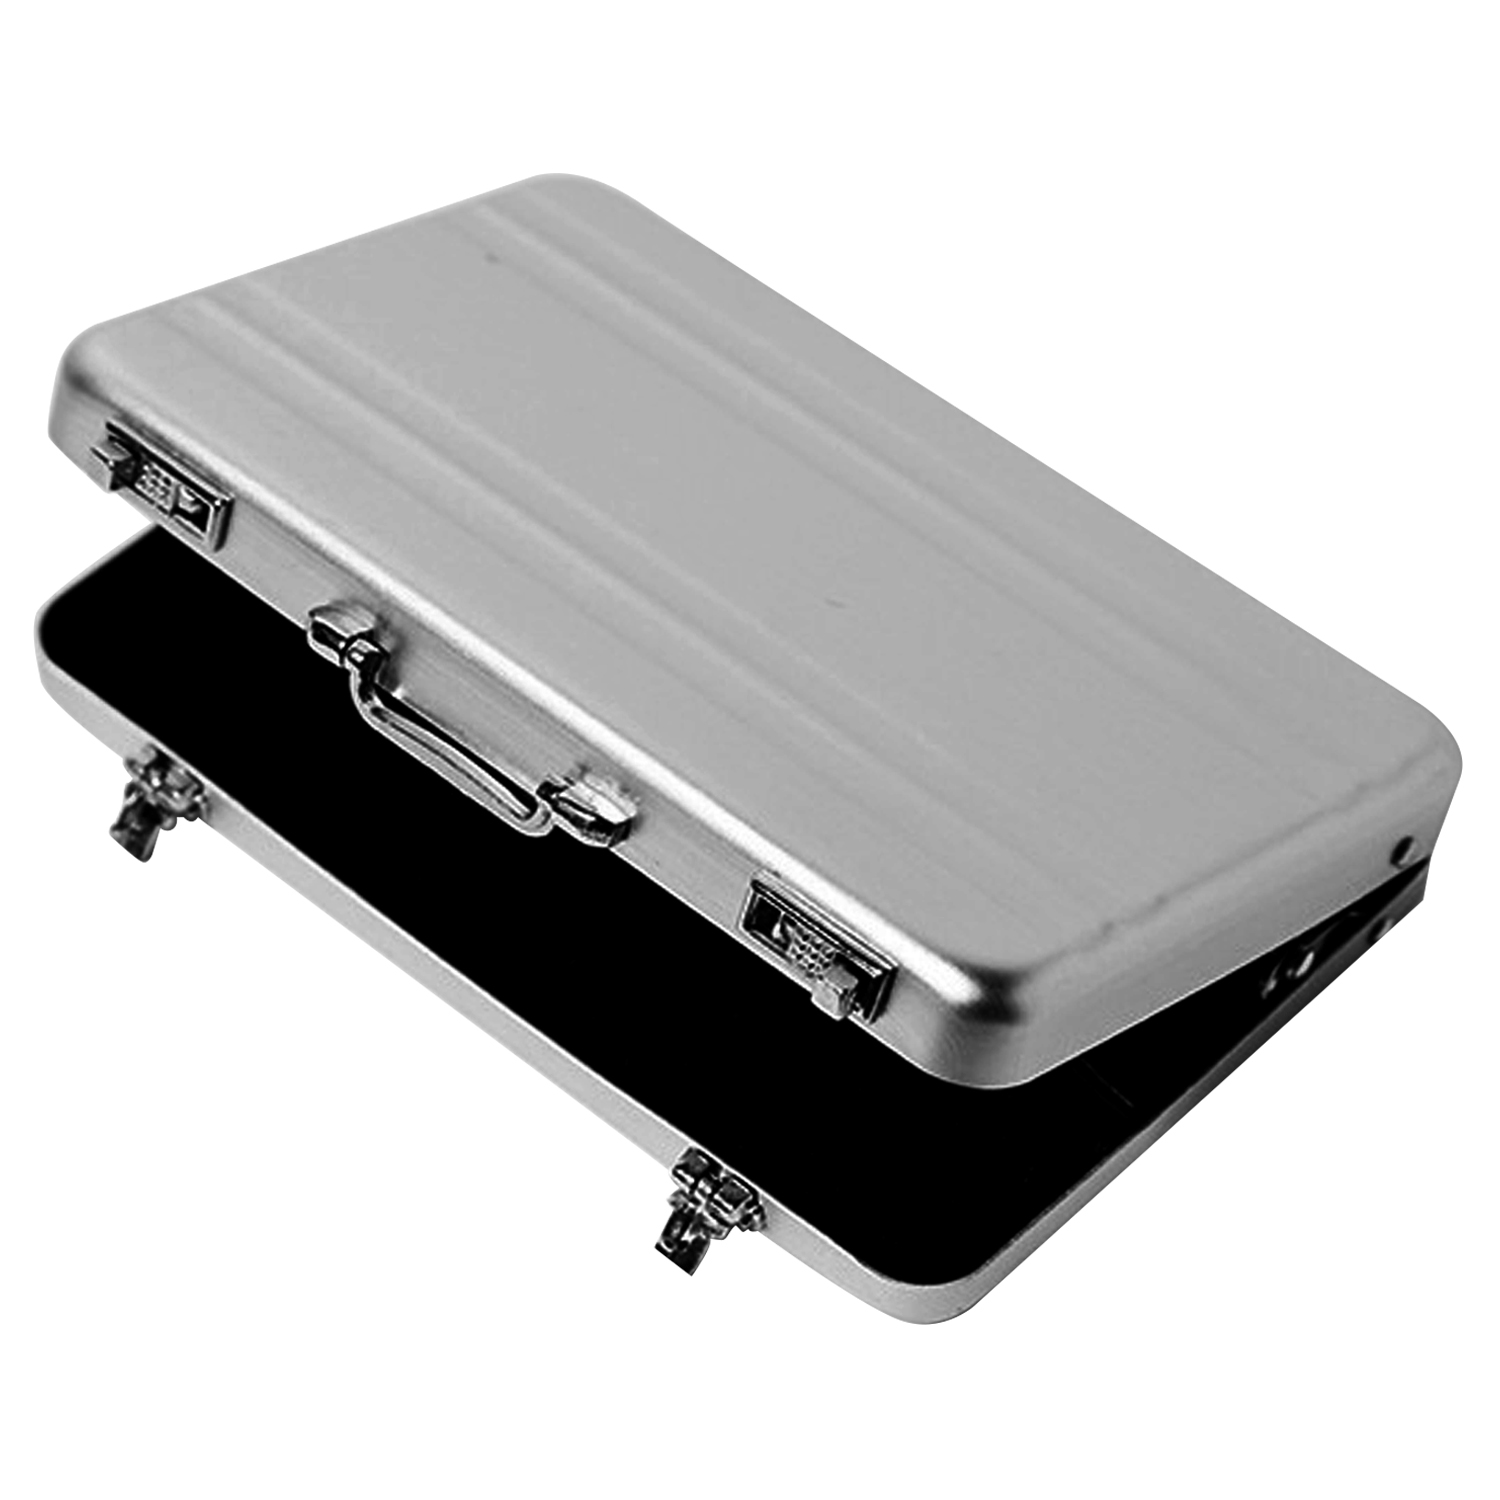 Mini Code Case Style Aluminum Card Holder Case Box Storage Organizer For Business Men Boss Name ID Credit Gift Card